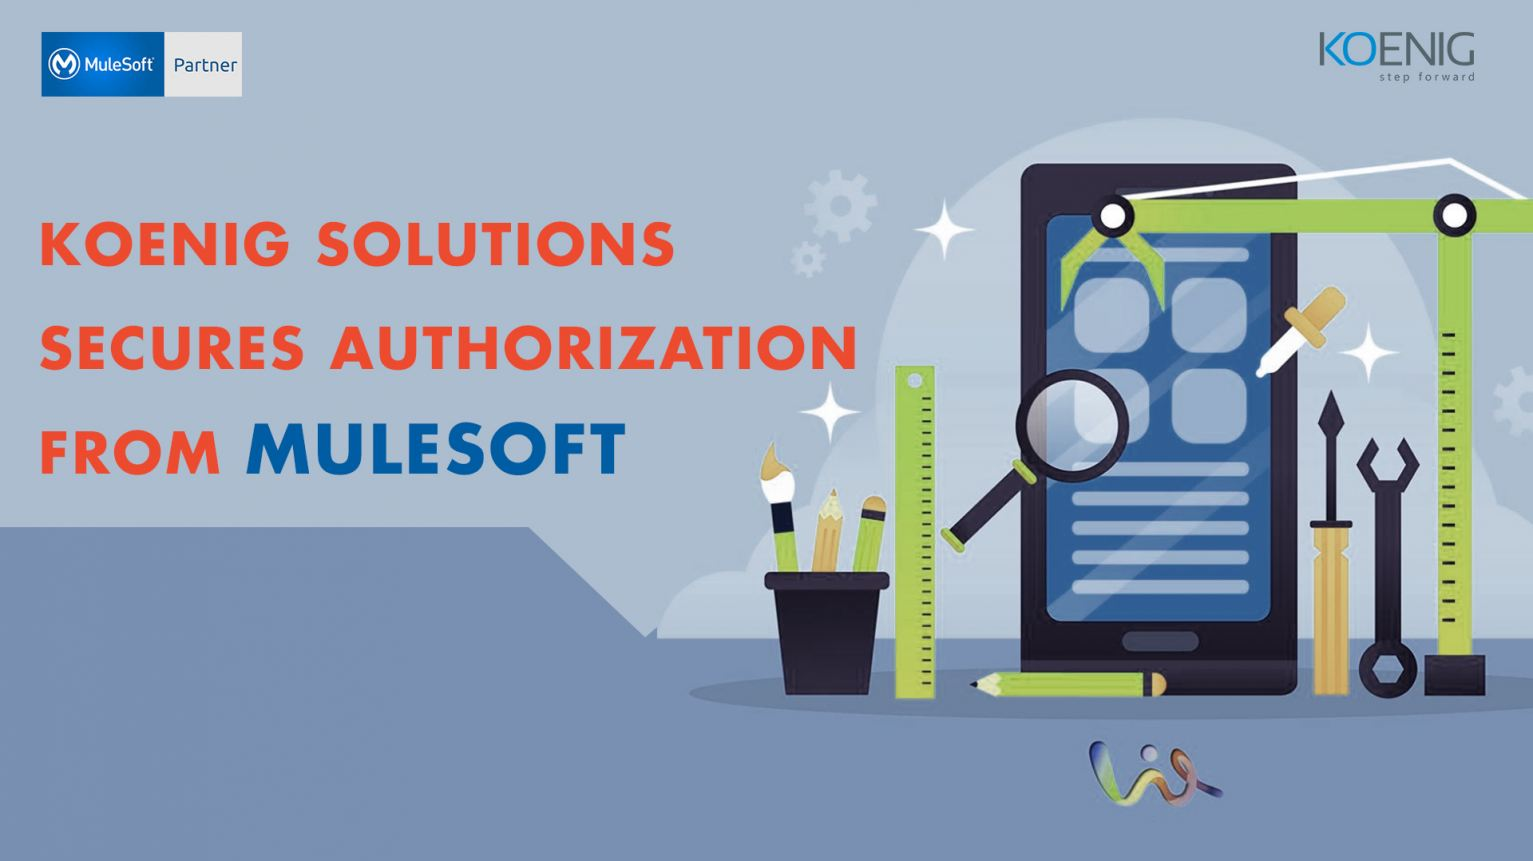 Koenig Solutions Secures Authorization from MuleSoft